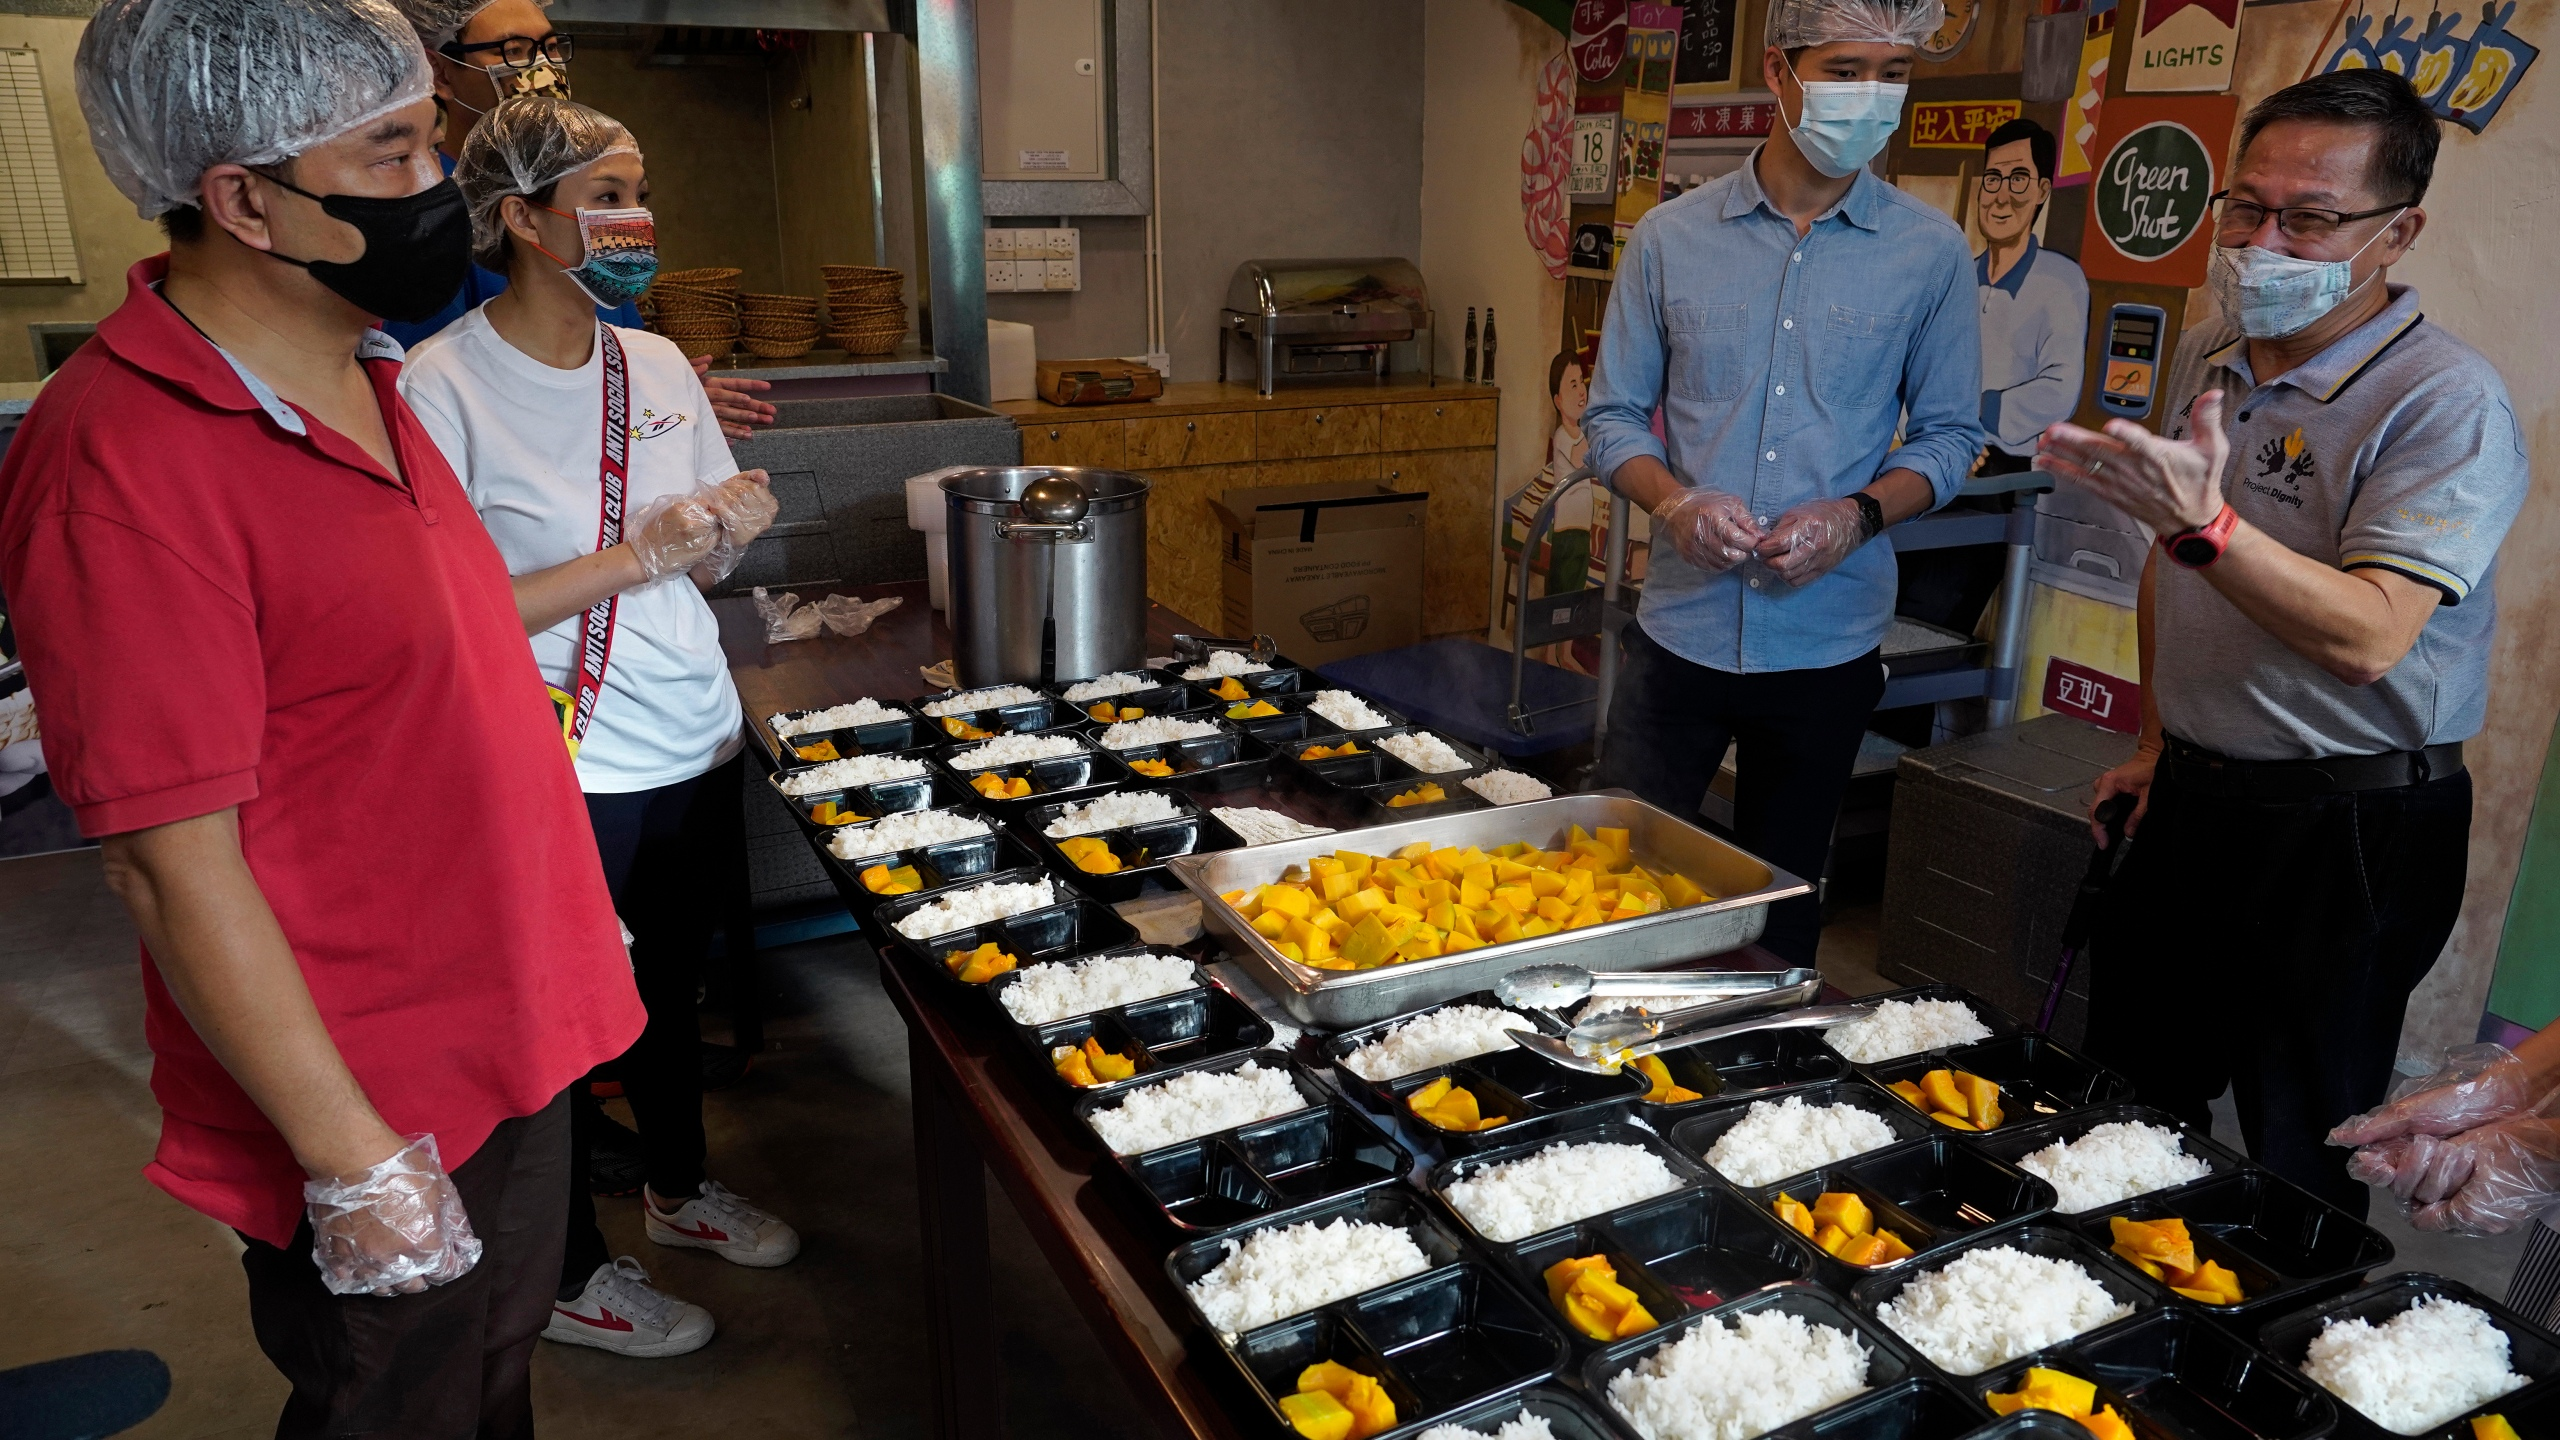 Koh Seng Choon